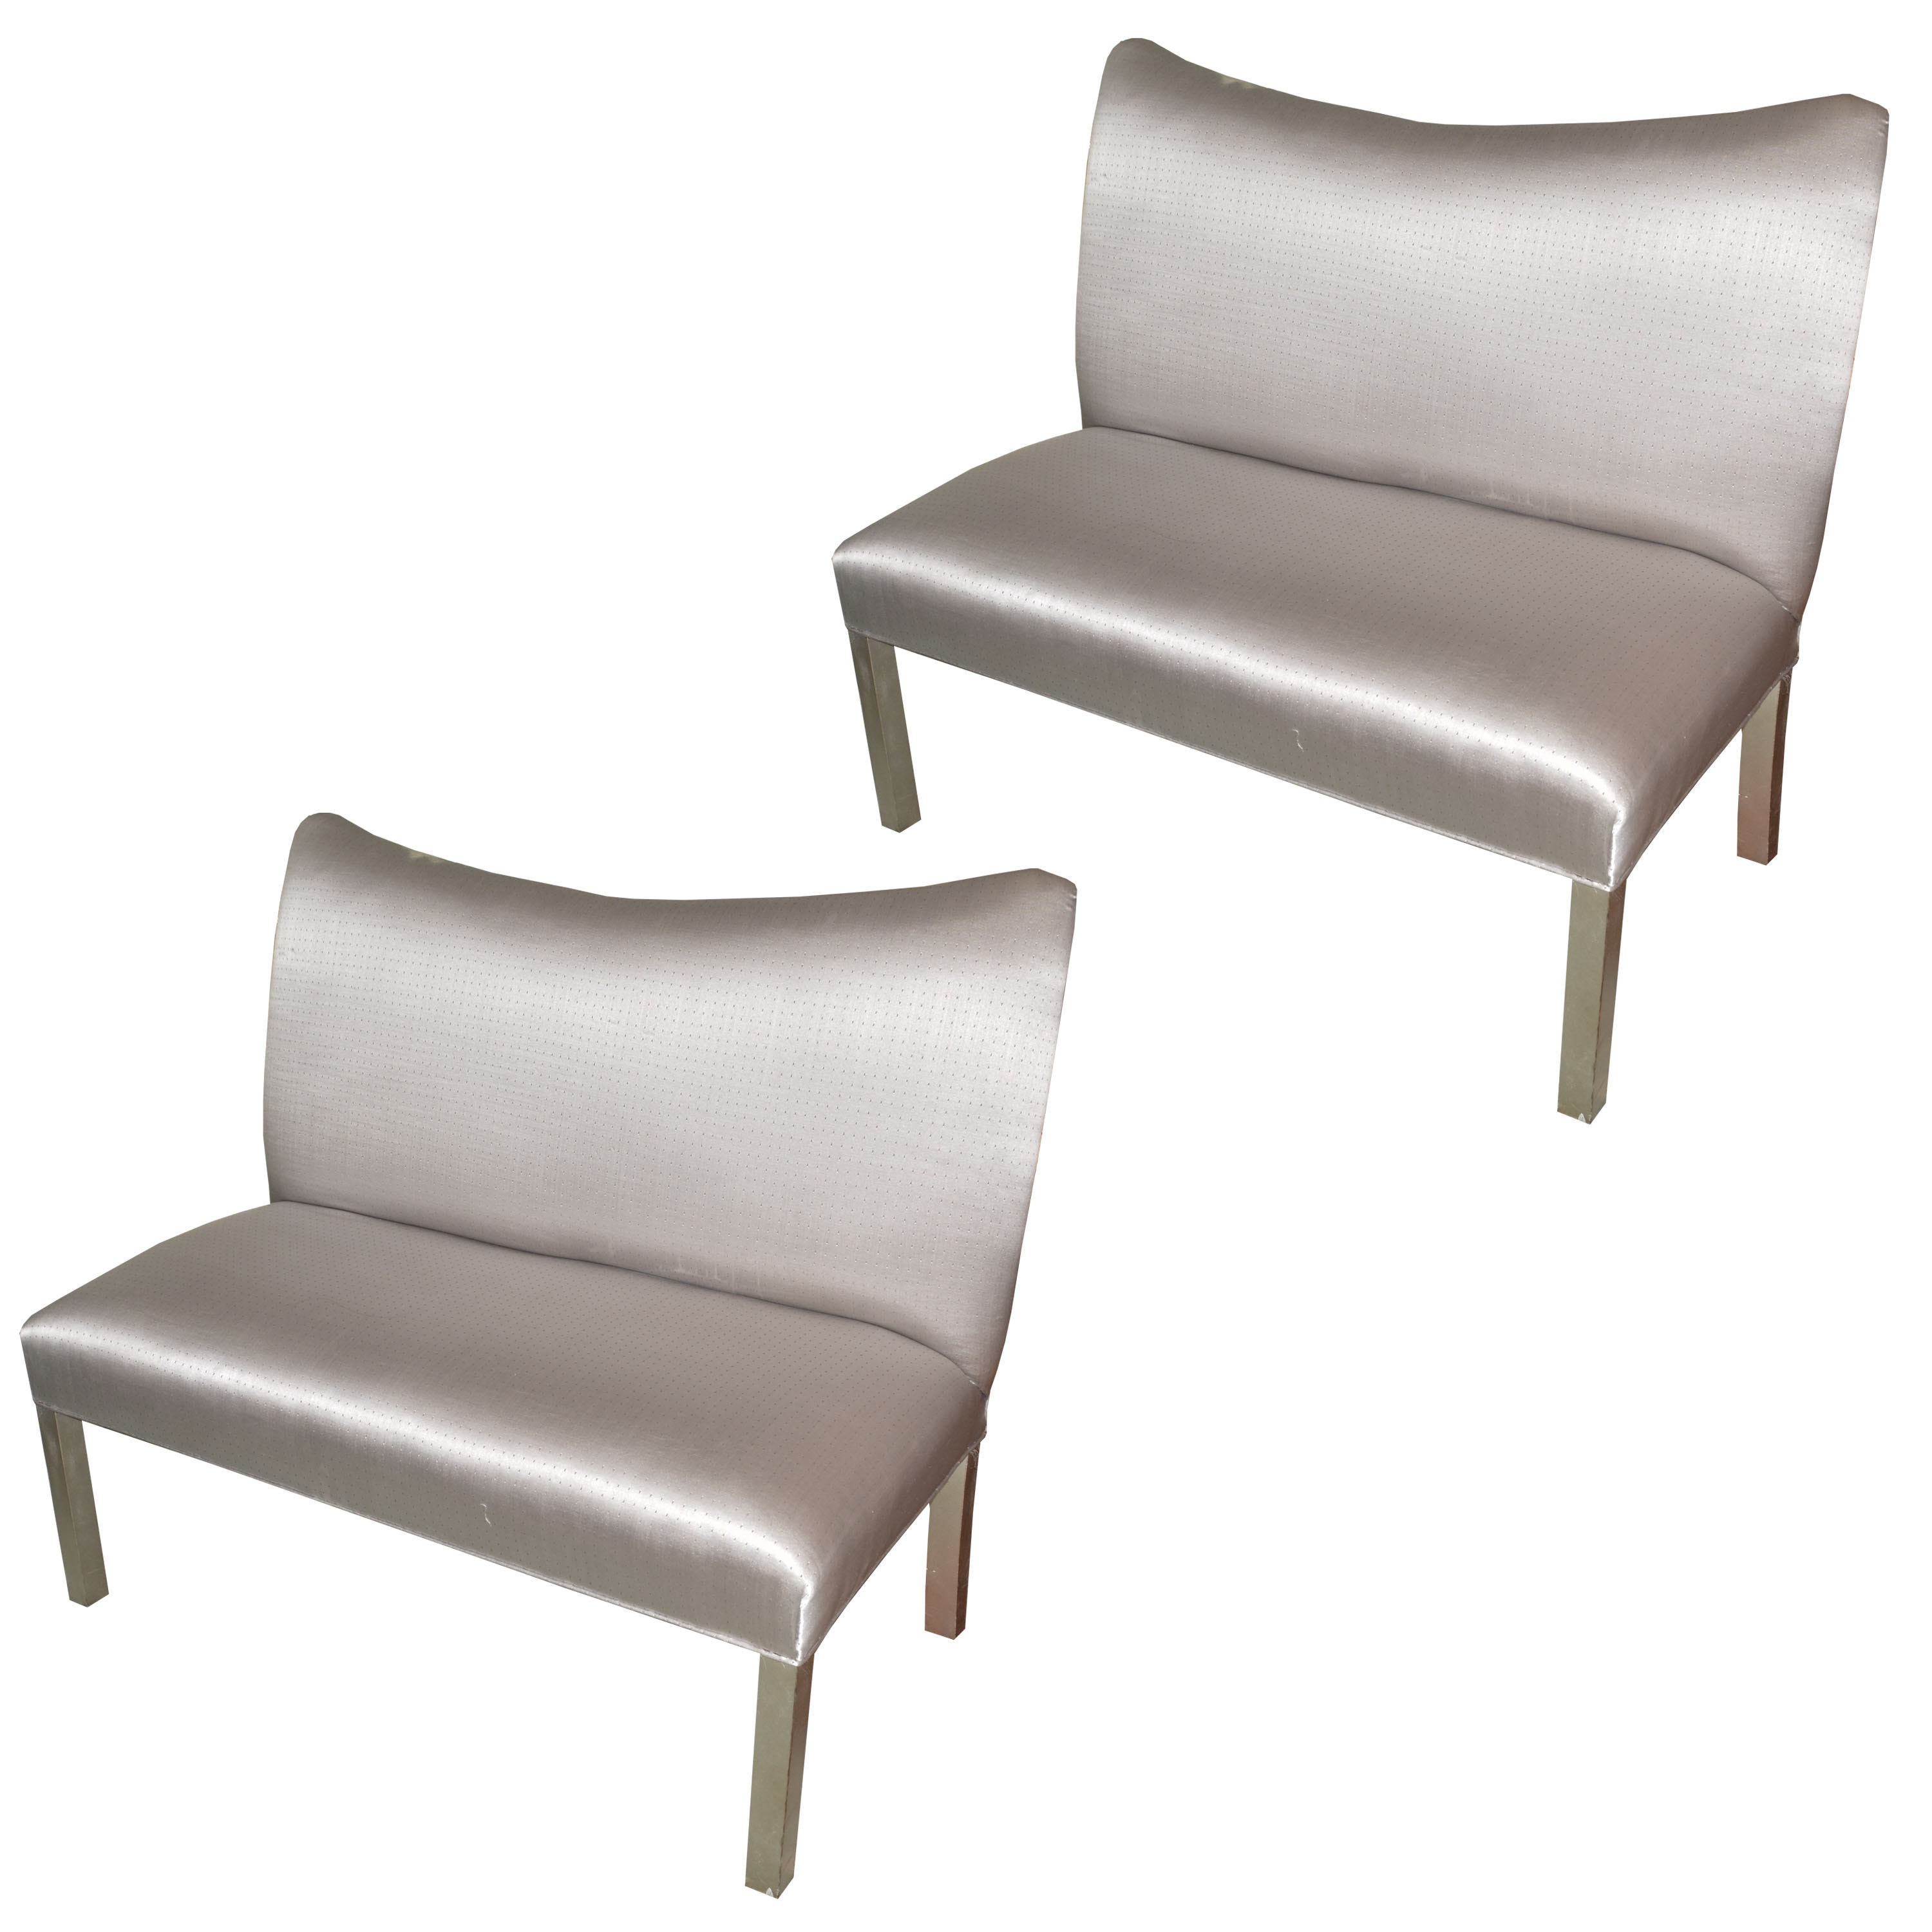 Pair of Silver Contemporary Loveseats